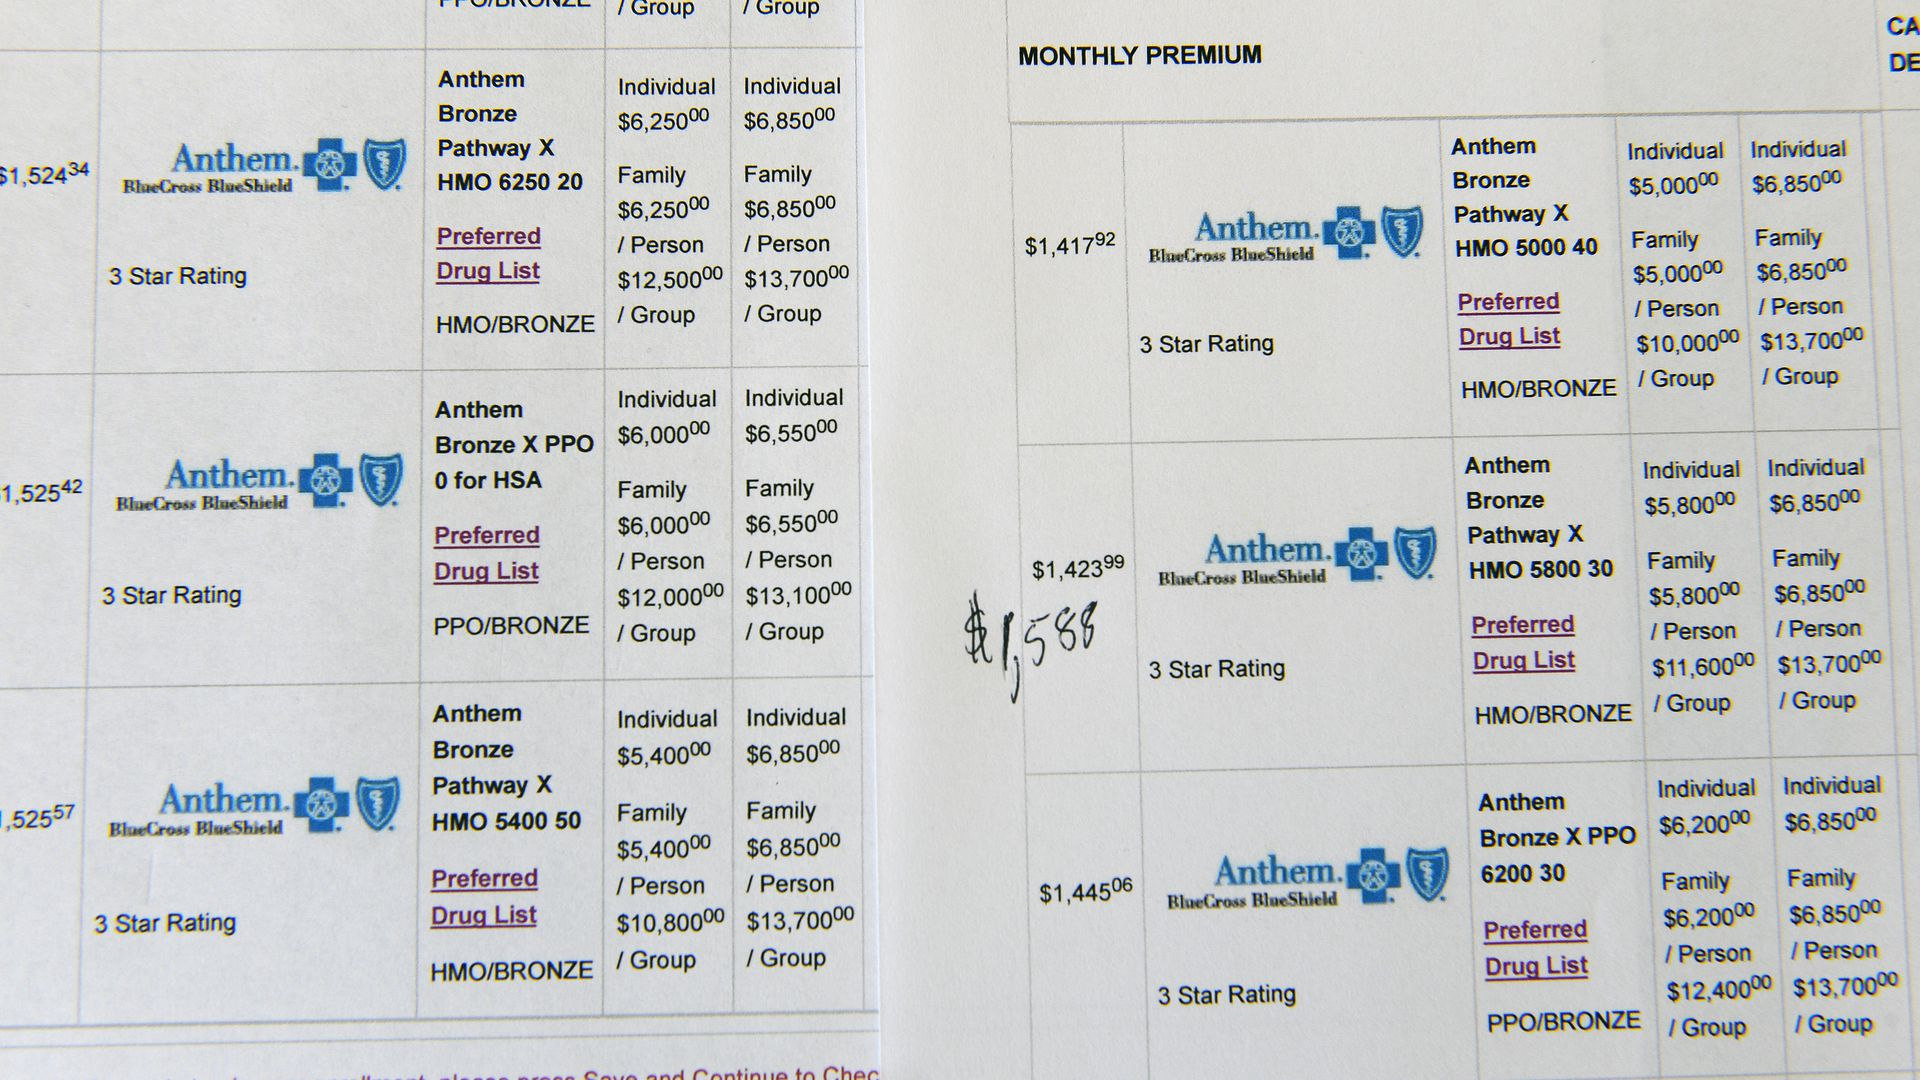 A monthly statement showing premiums for Anthem Blue Cross Blue Shield.